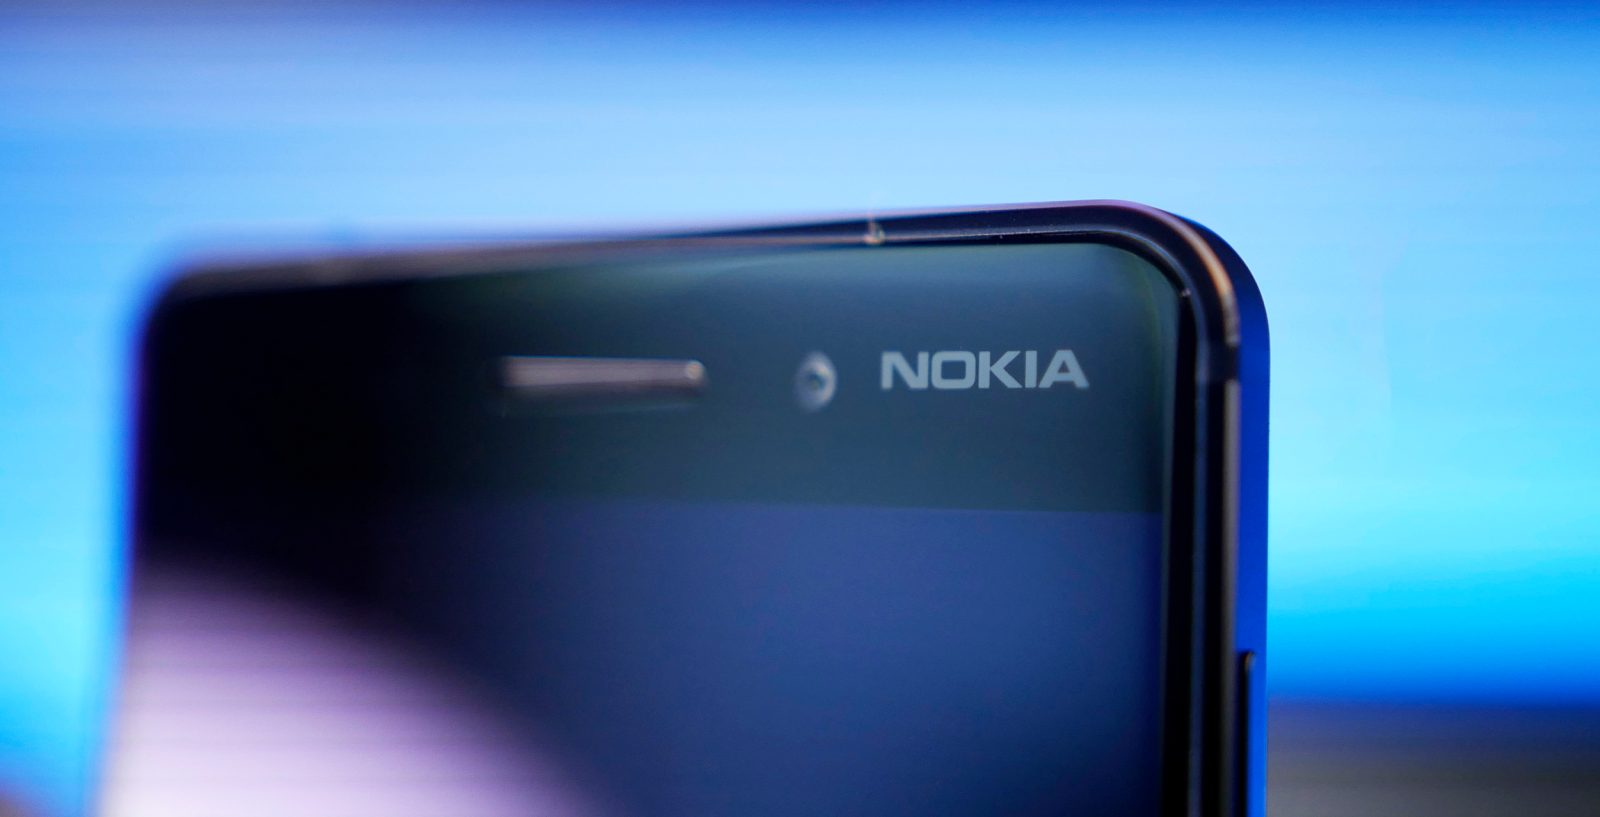 Nokia 8 appears in copper gold gold silver blue and more nokia is expected to unveil the nokia 8 at a press event on 16th august and will present a few color options including blue silver gold gold blue fandeluxe Gallery